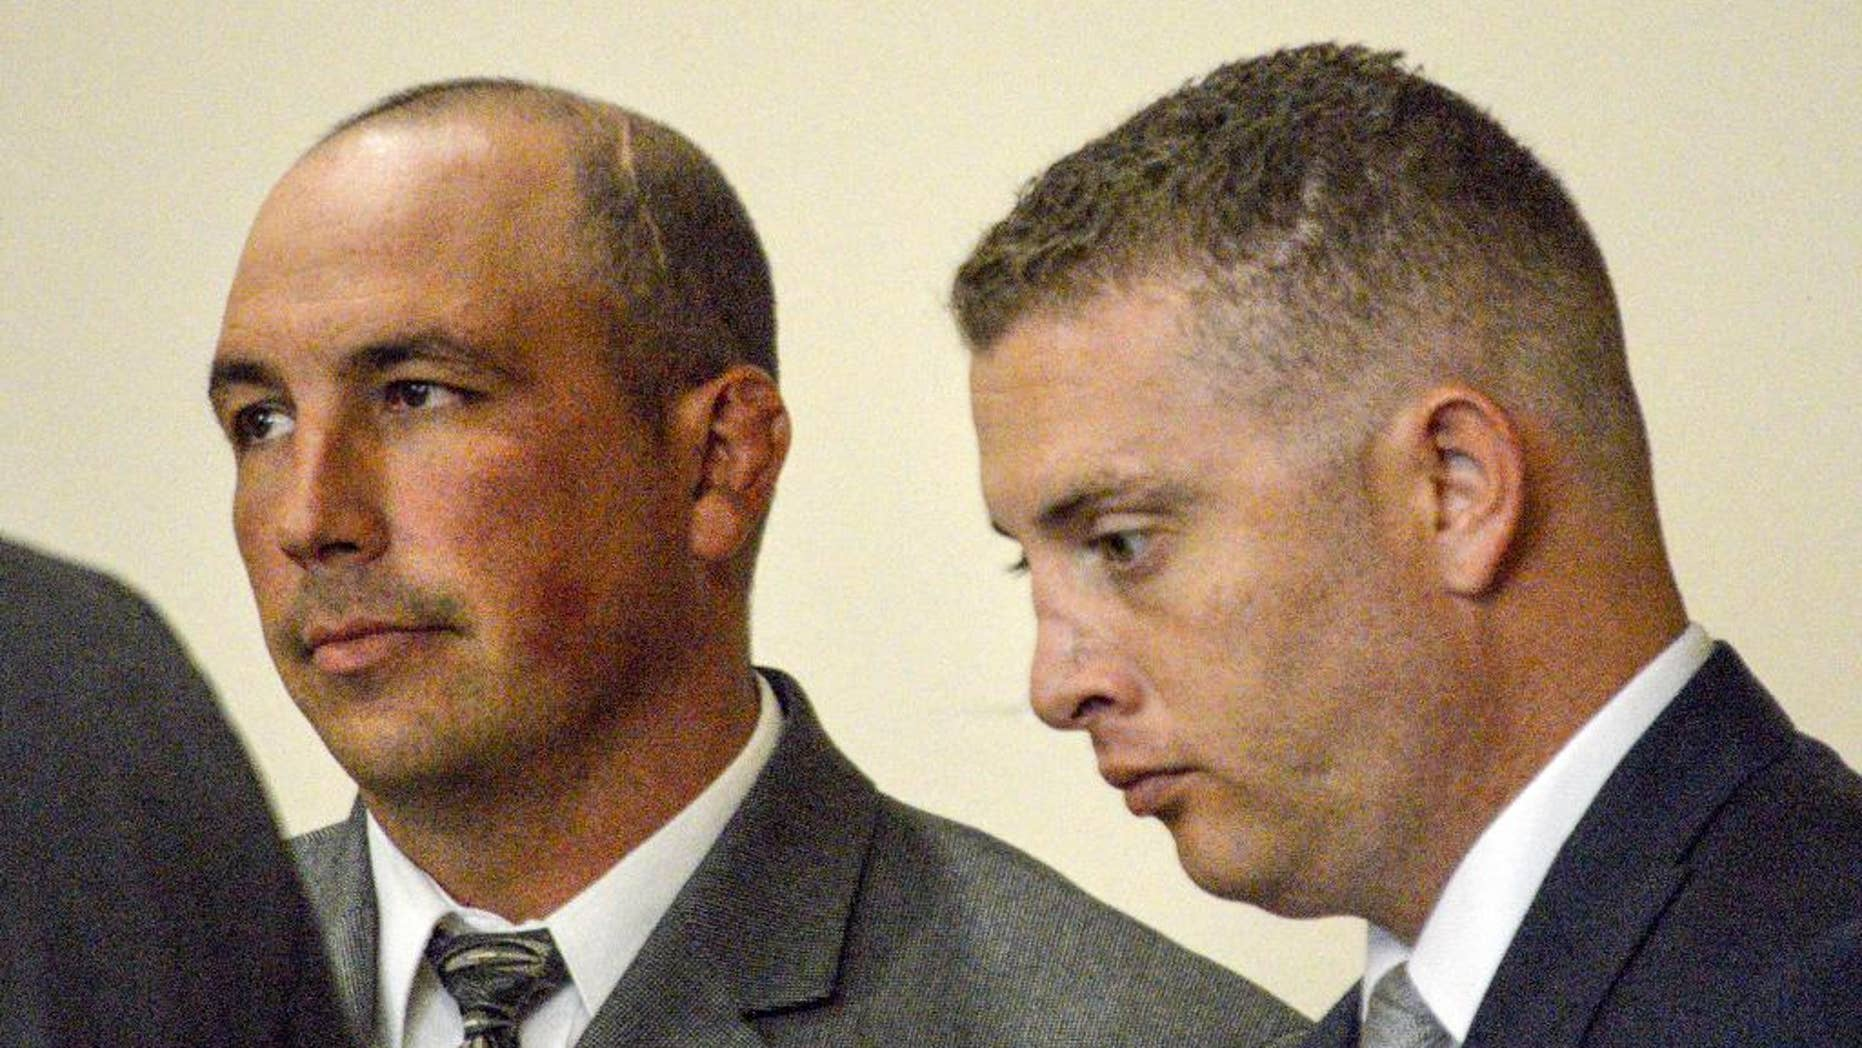 FILE - In this Aug. 18, 2015 file photo, former Albuquerque Police detective Keith Sandy, left, and Officer Dominique Perez speak with attorneys during a preliminary hearing in Albuquerque, N.M., on Tuesday, Aug. 18, 2015. They are expected to be arraigned Friday, Sept. 11, 2015 on second-degree murder charges in the on-duty shooting death of a homeless man who authorities say suffered from mental illness.(AP Photo/Russell Contreras, File)